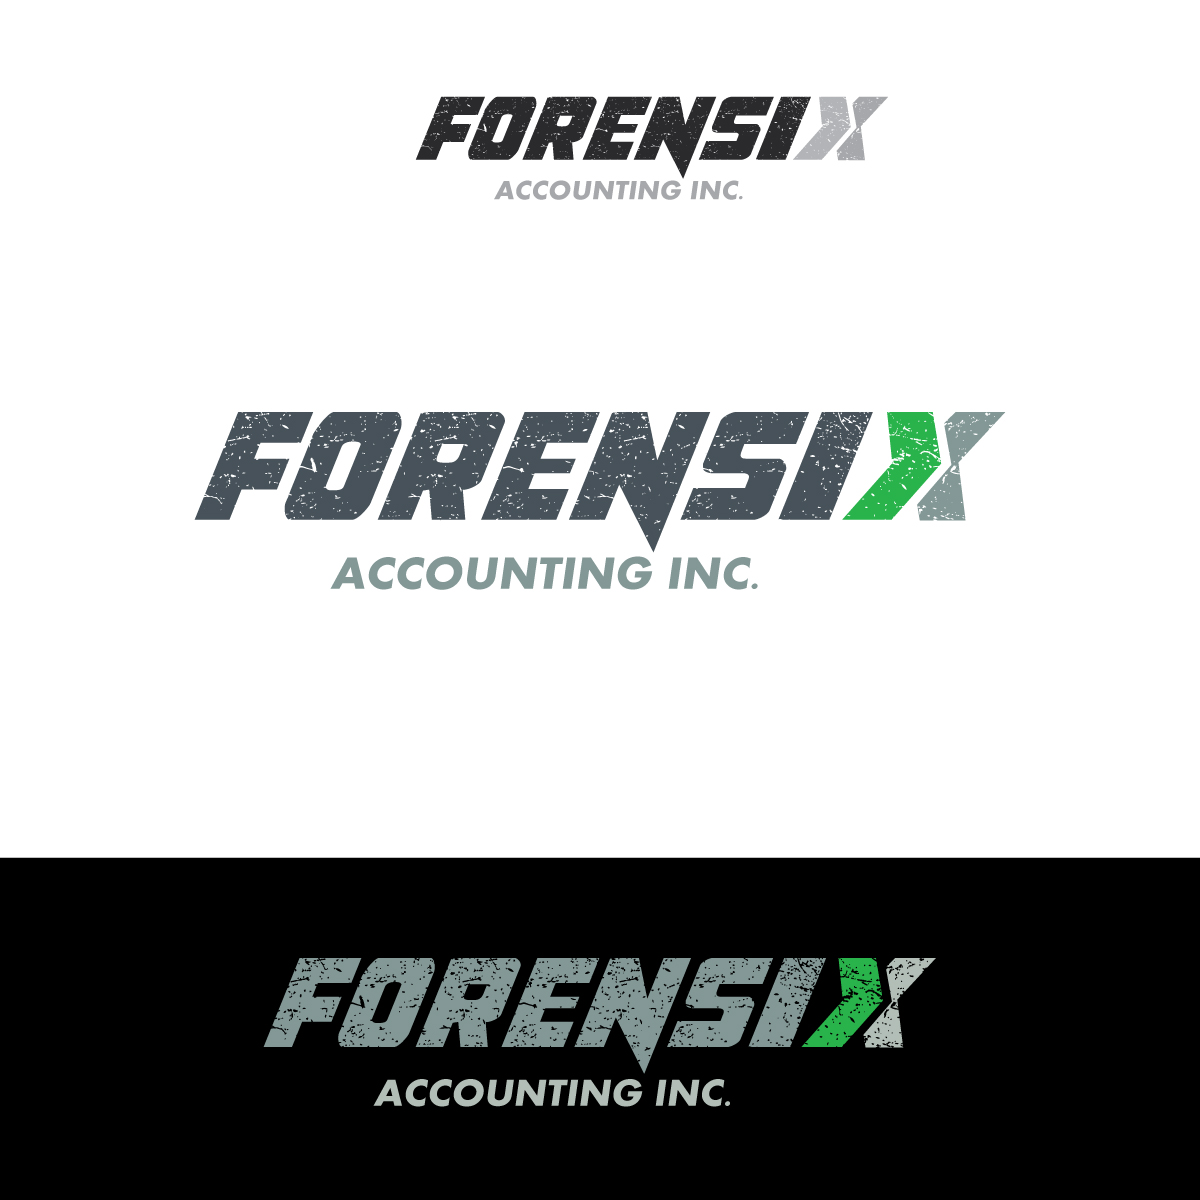 Logo Design by danelav - Entry No. 39 in the Logo Design Contest FORENSIX ACCOUNTING INC. Logo Design.